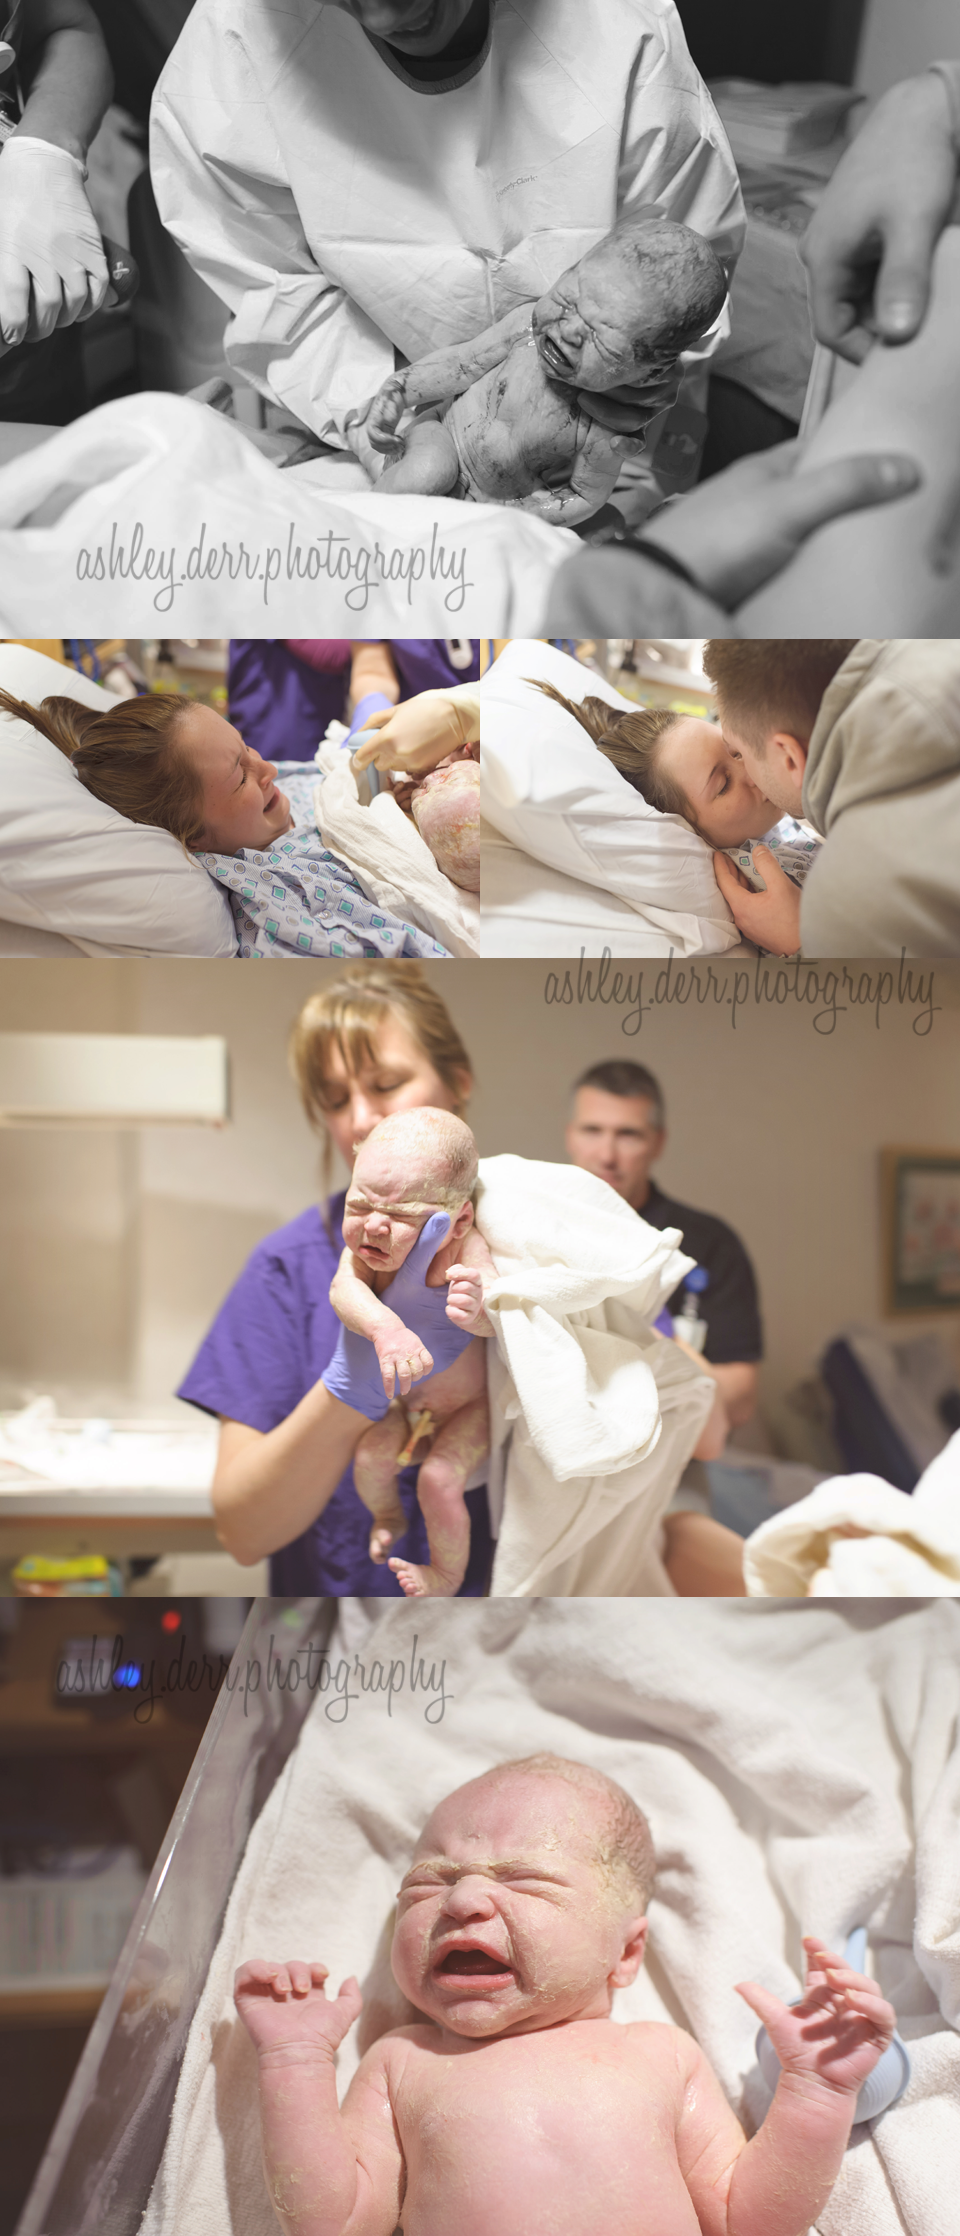 butler memorial hospital baby delivery pictures